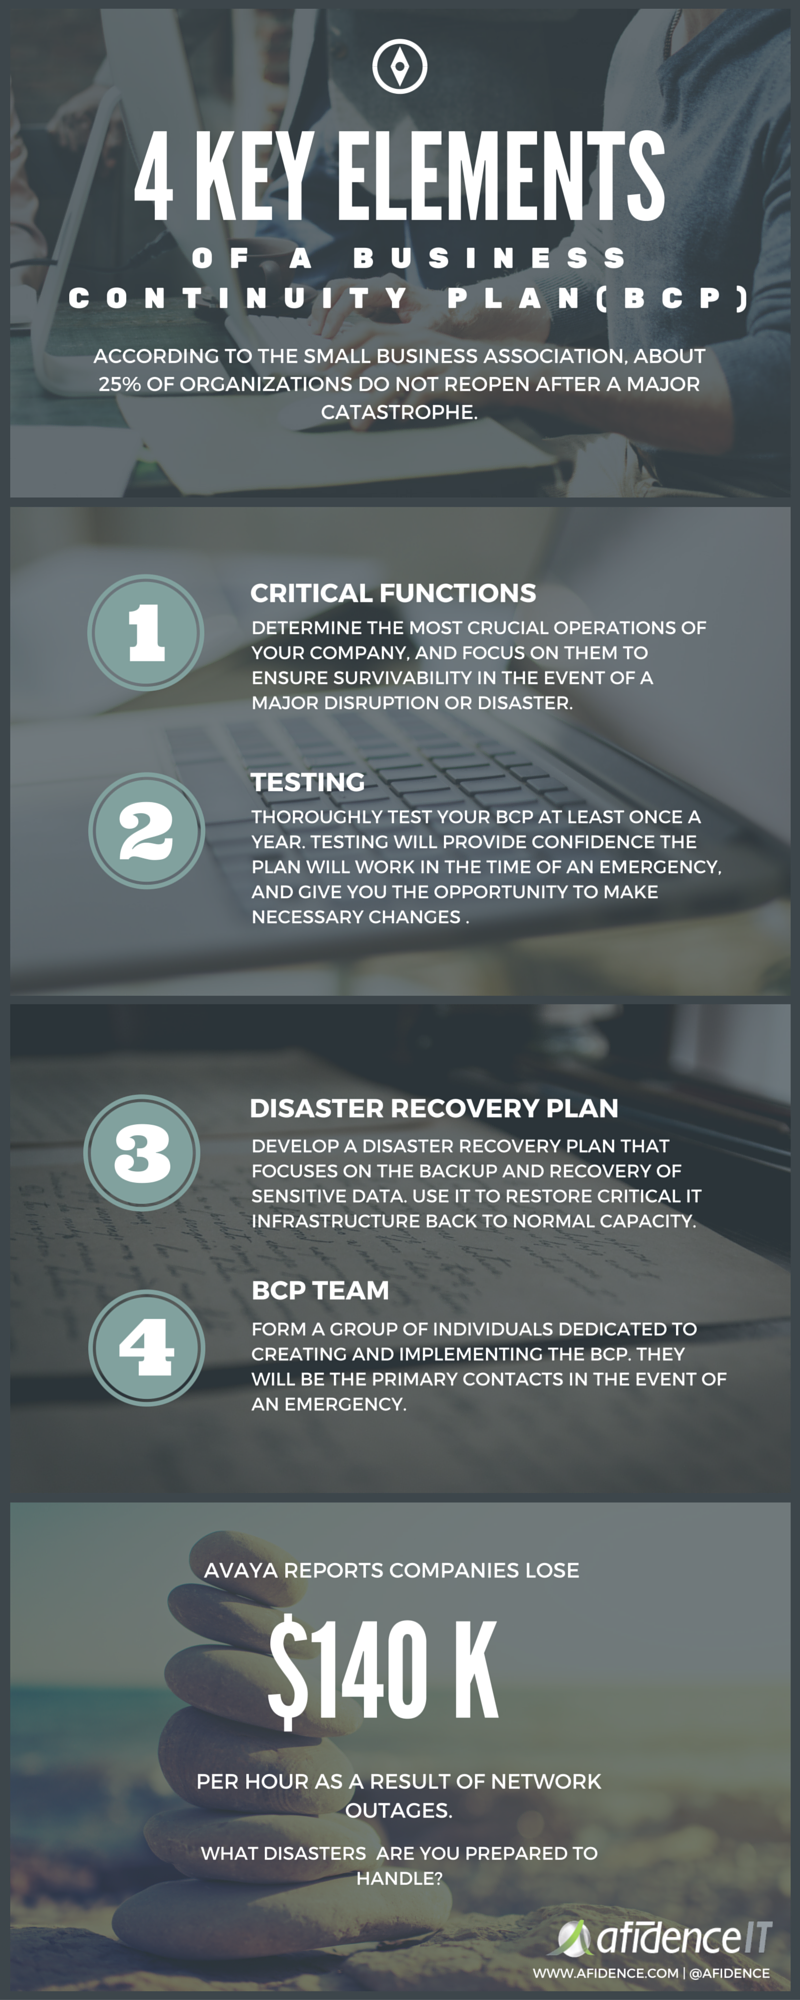 4 Key Elements of a Business Continuity Plan